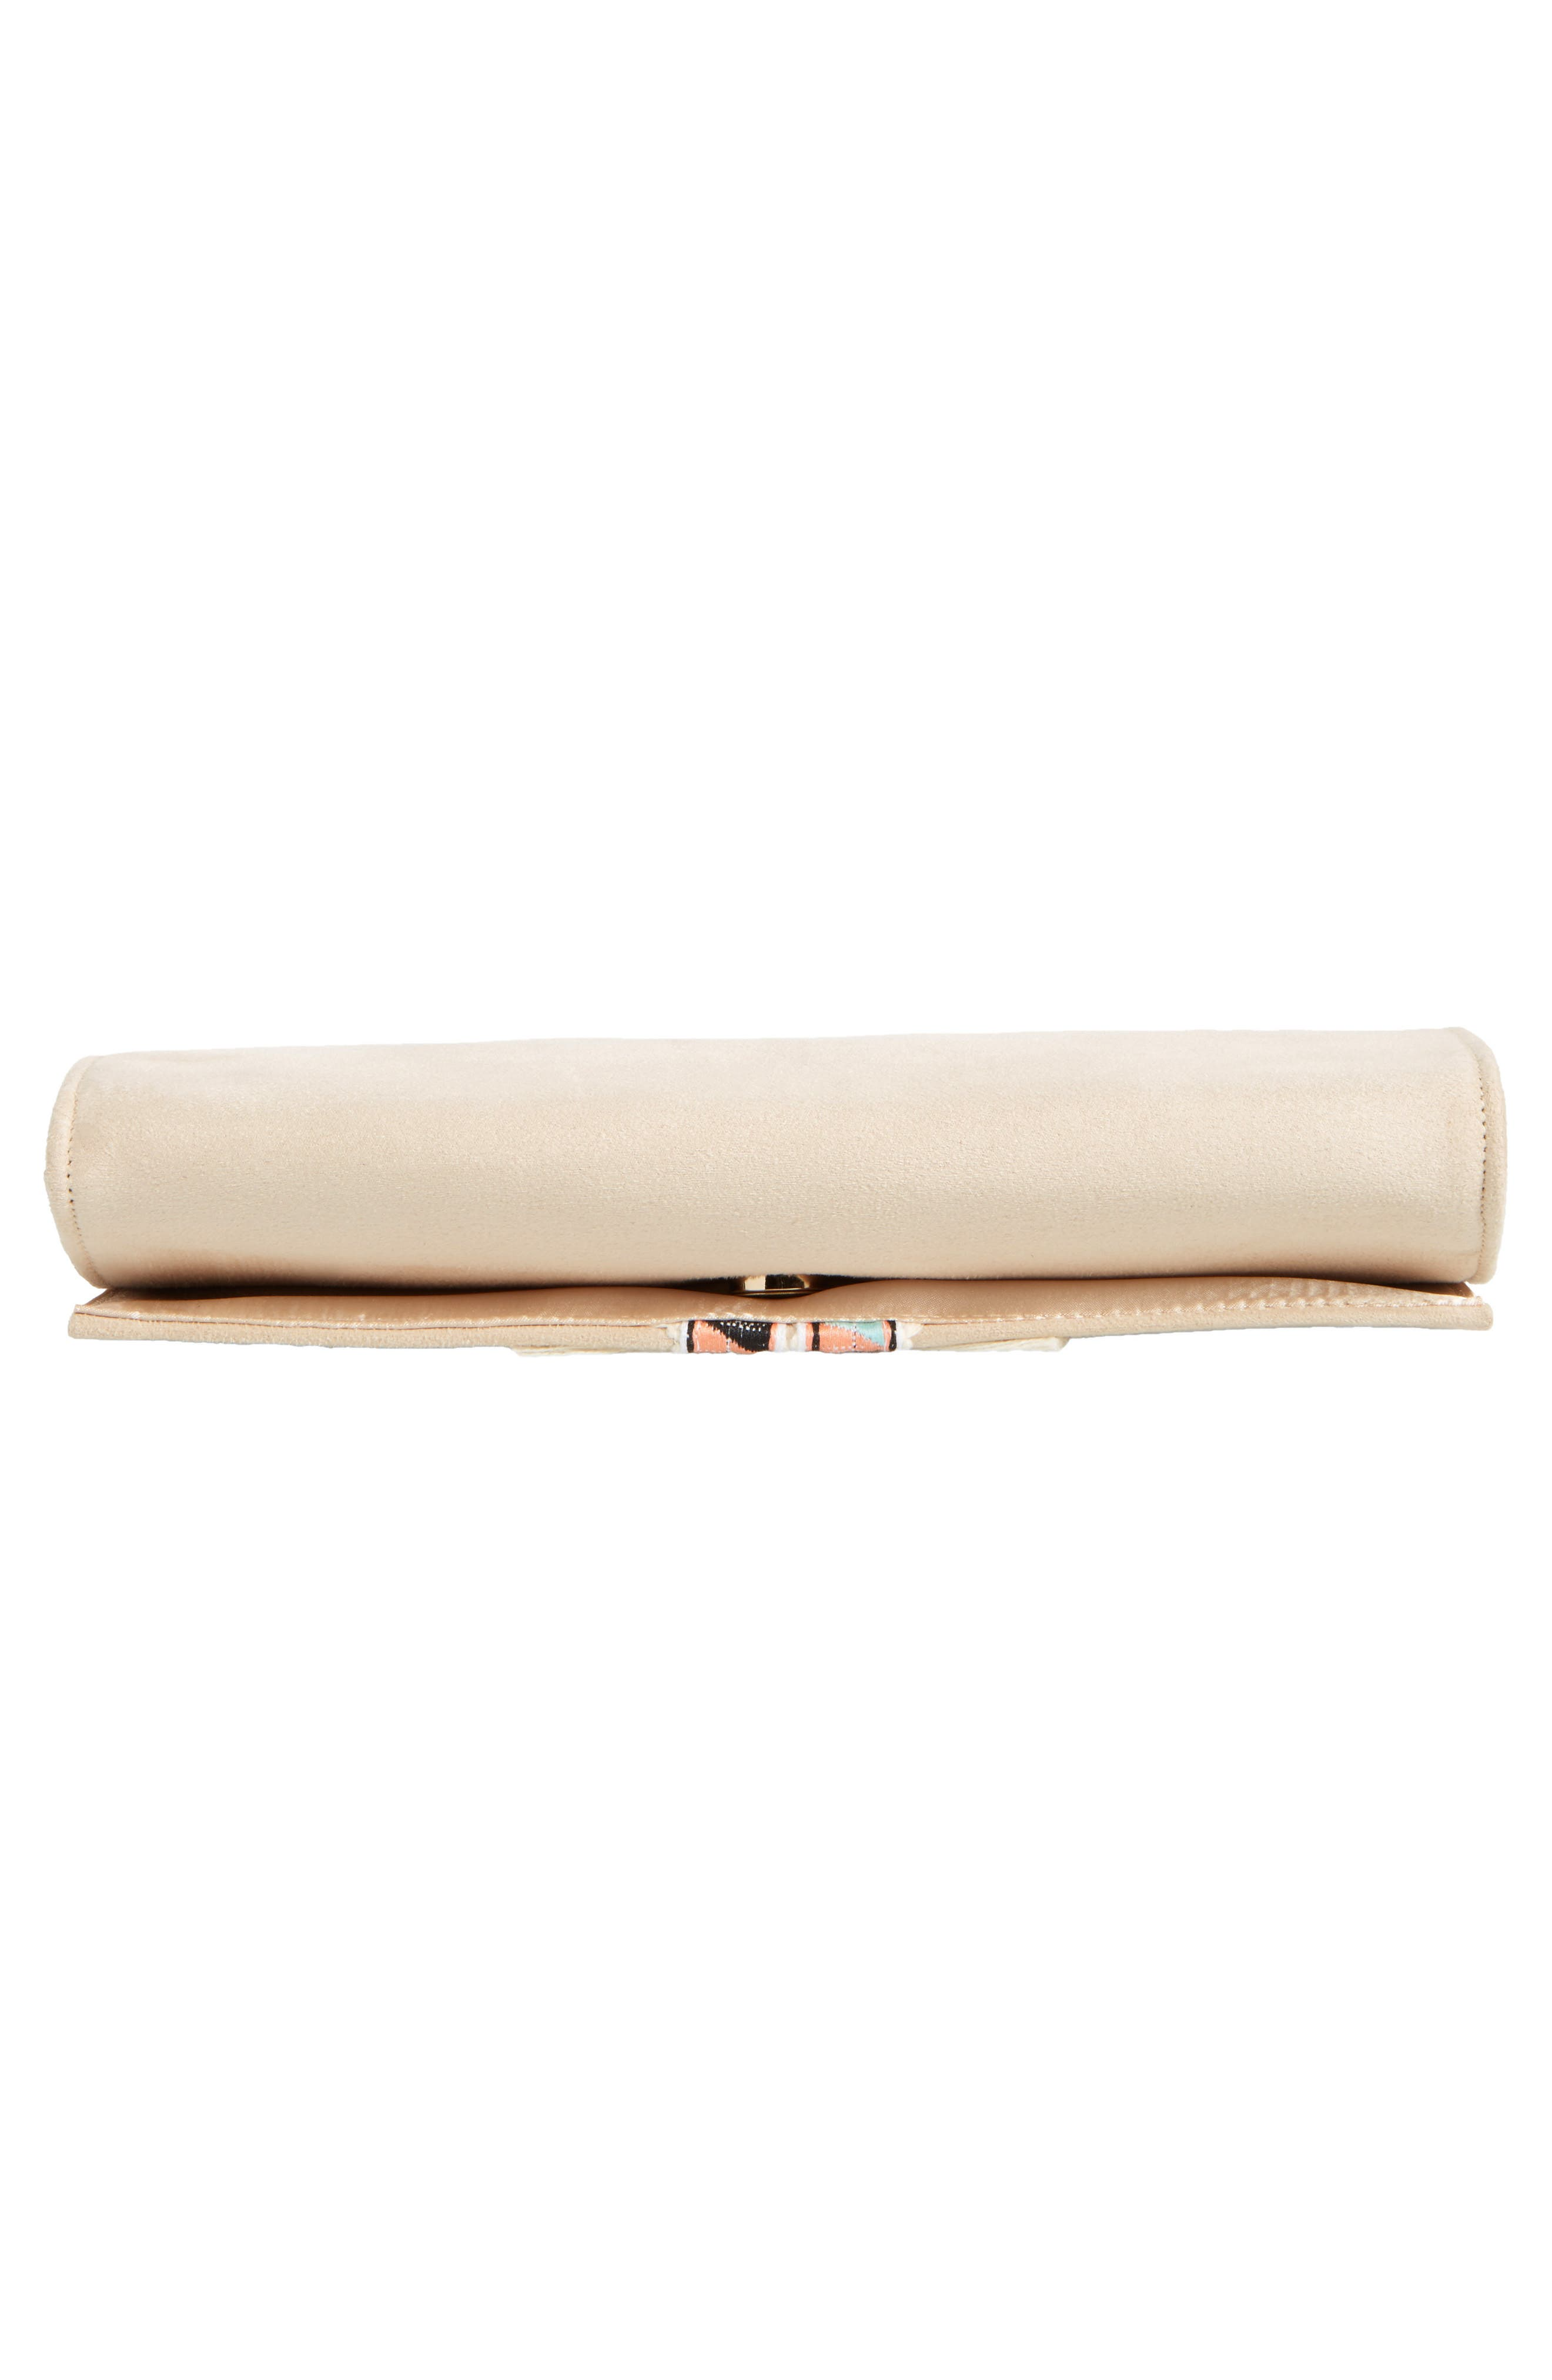 Rada Embroidered Clutch,                             Alternate thumbnail 4, color,                             Sand